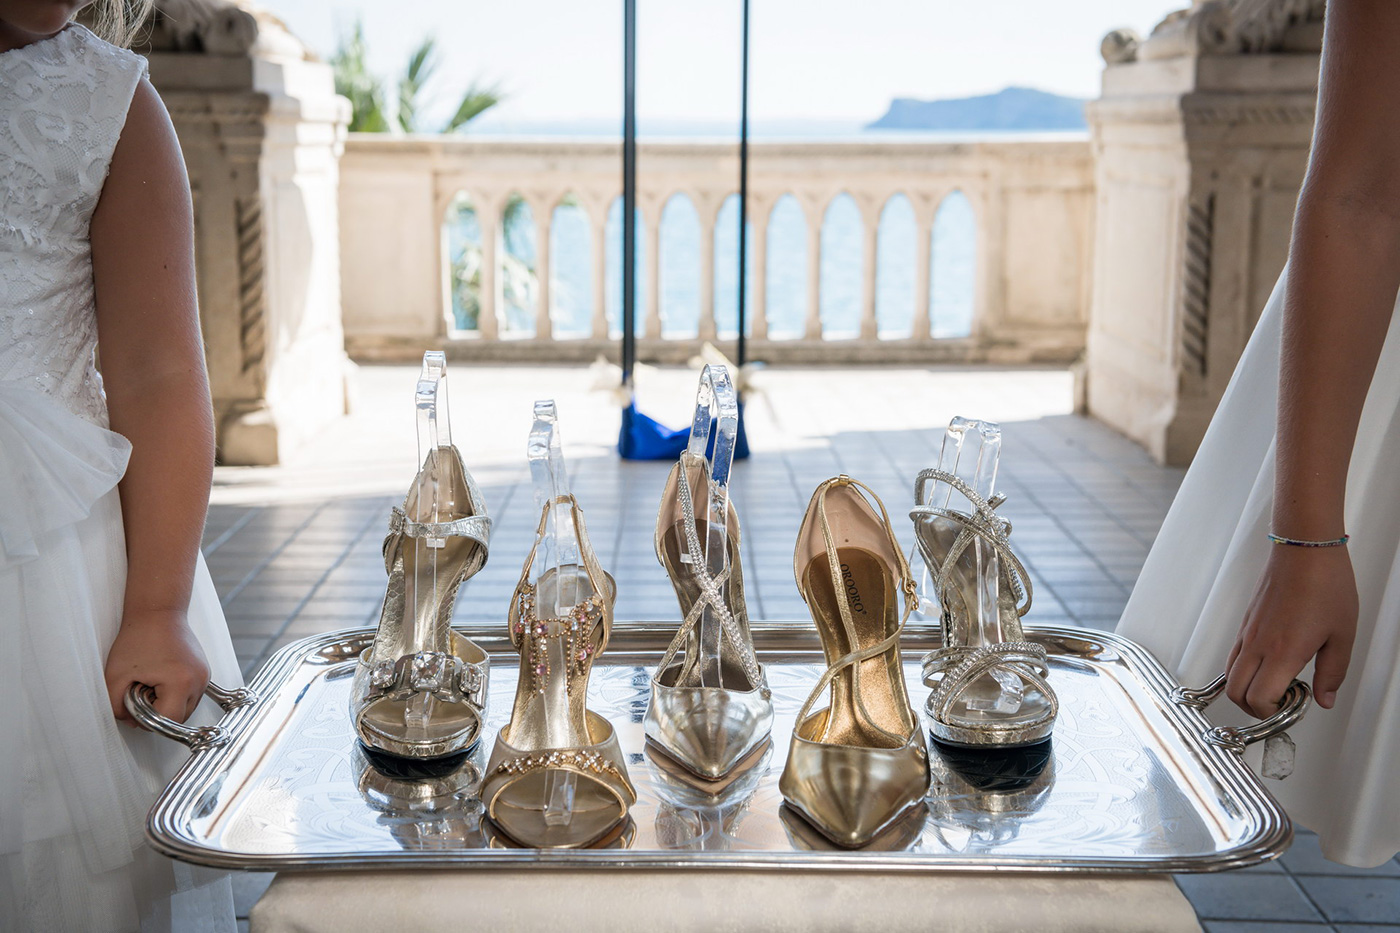 Photoshoot: Golden Shades of Water with Dress Galia Lahav House Couture and Luxury Shoes OROORO by Oronzo De Matteis